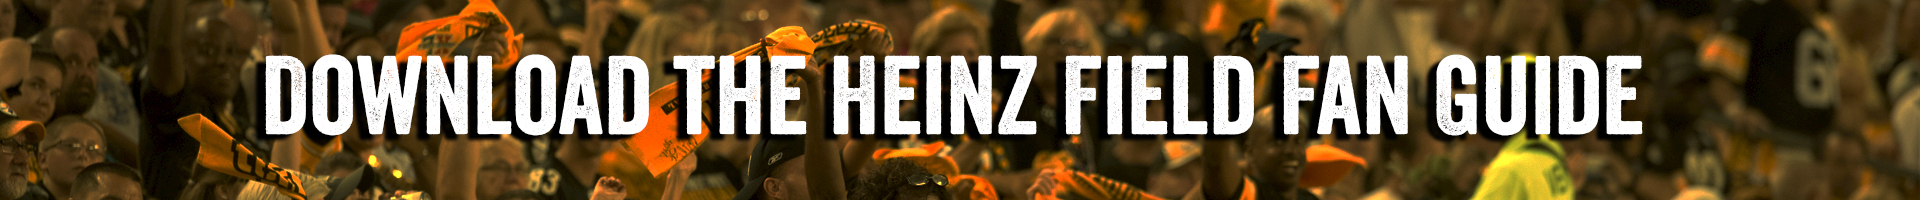 Download the Heinz Field Fan Guide